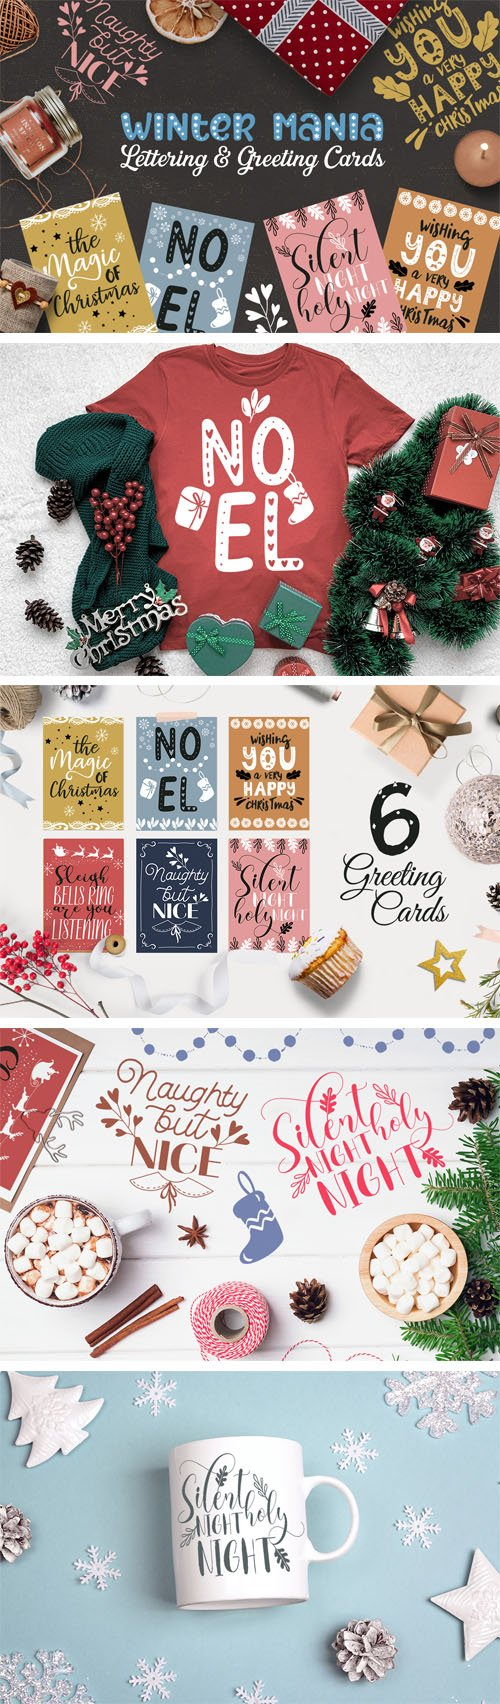 Winter Mania - Lettering and Greeting Cards